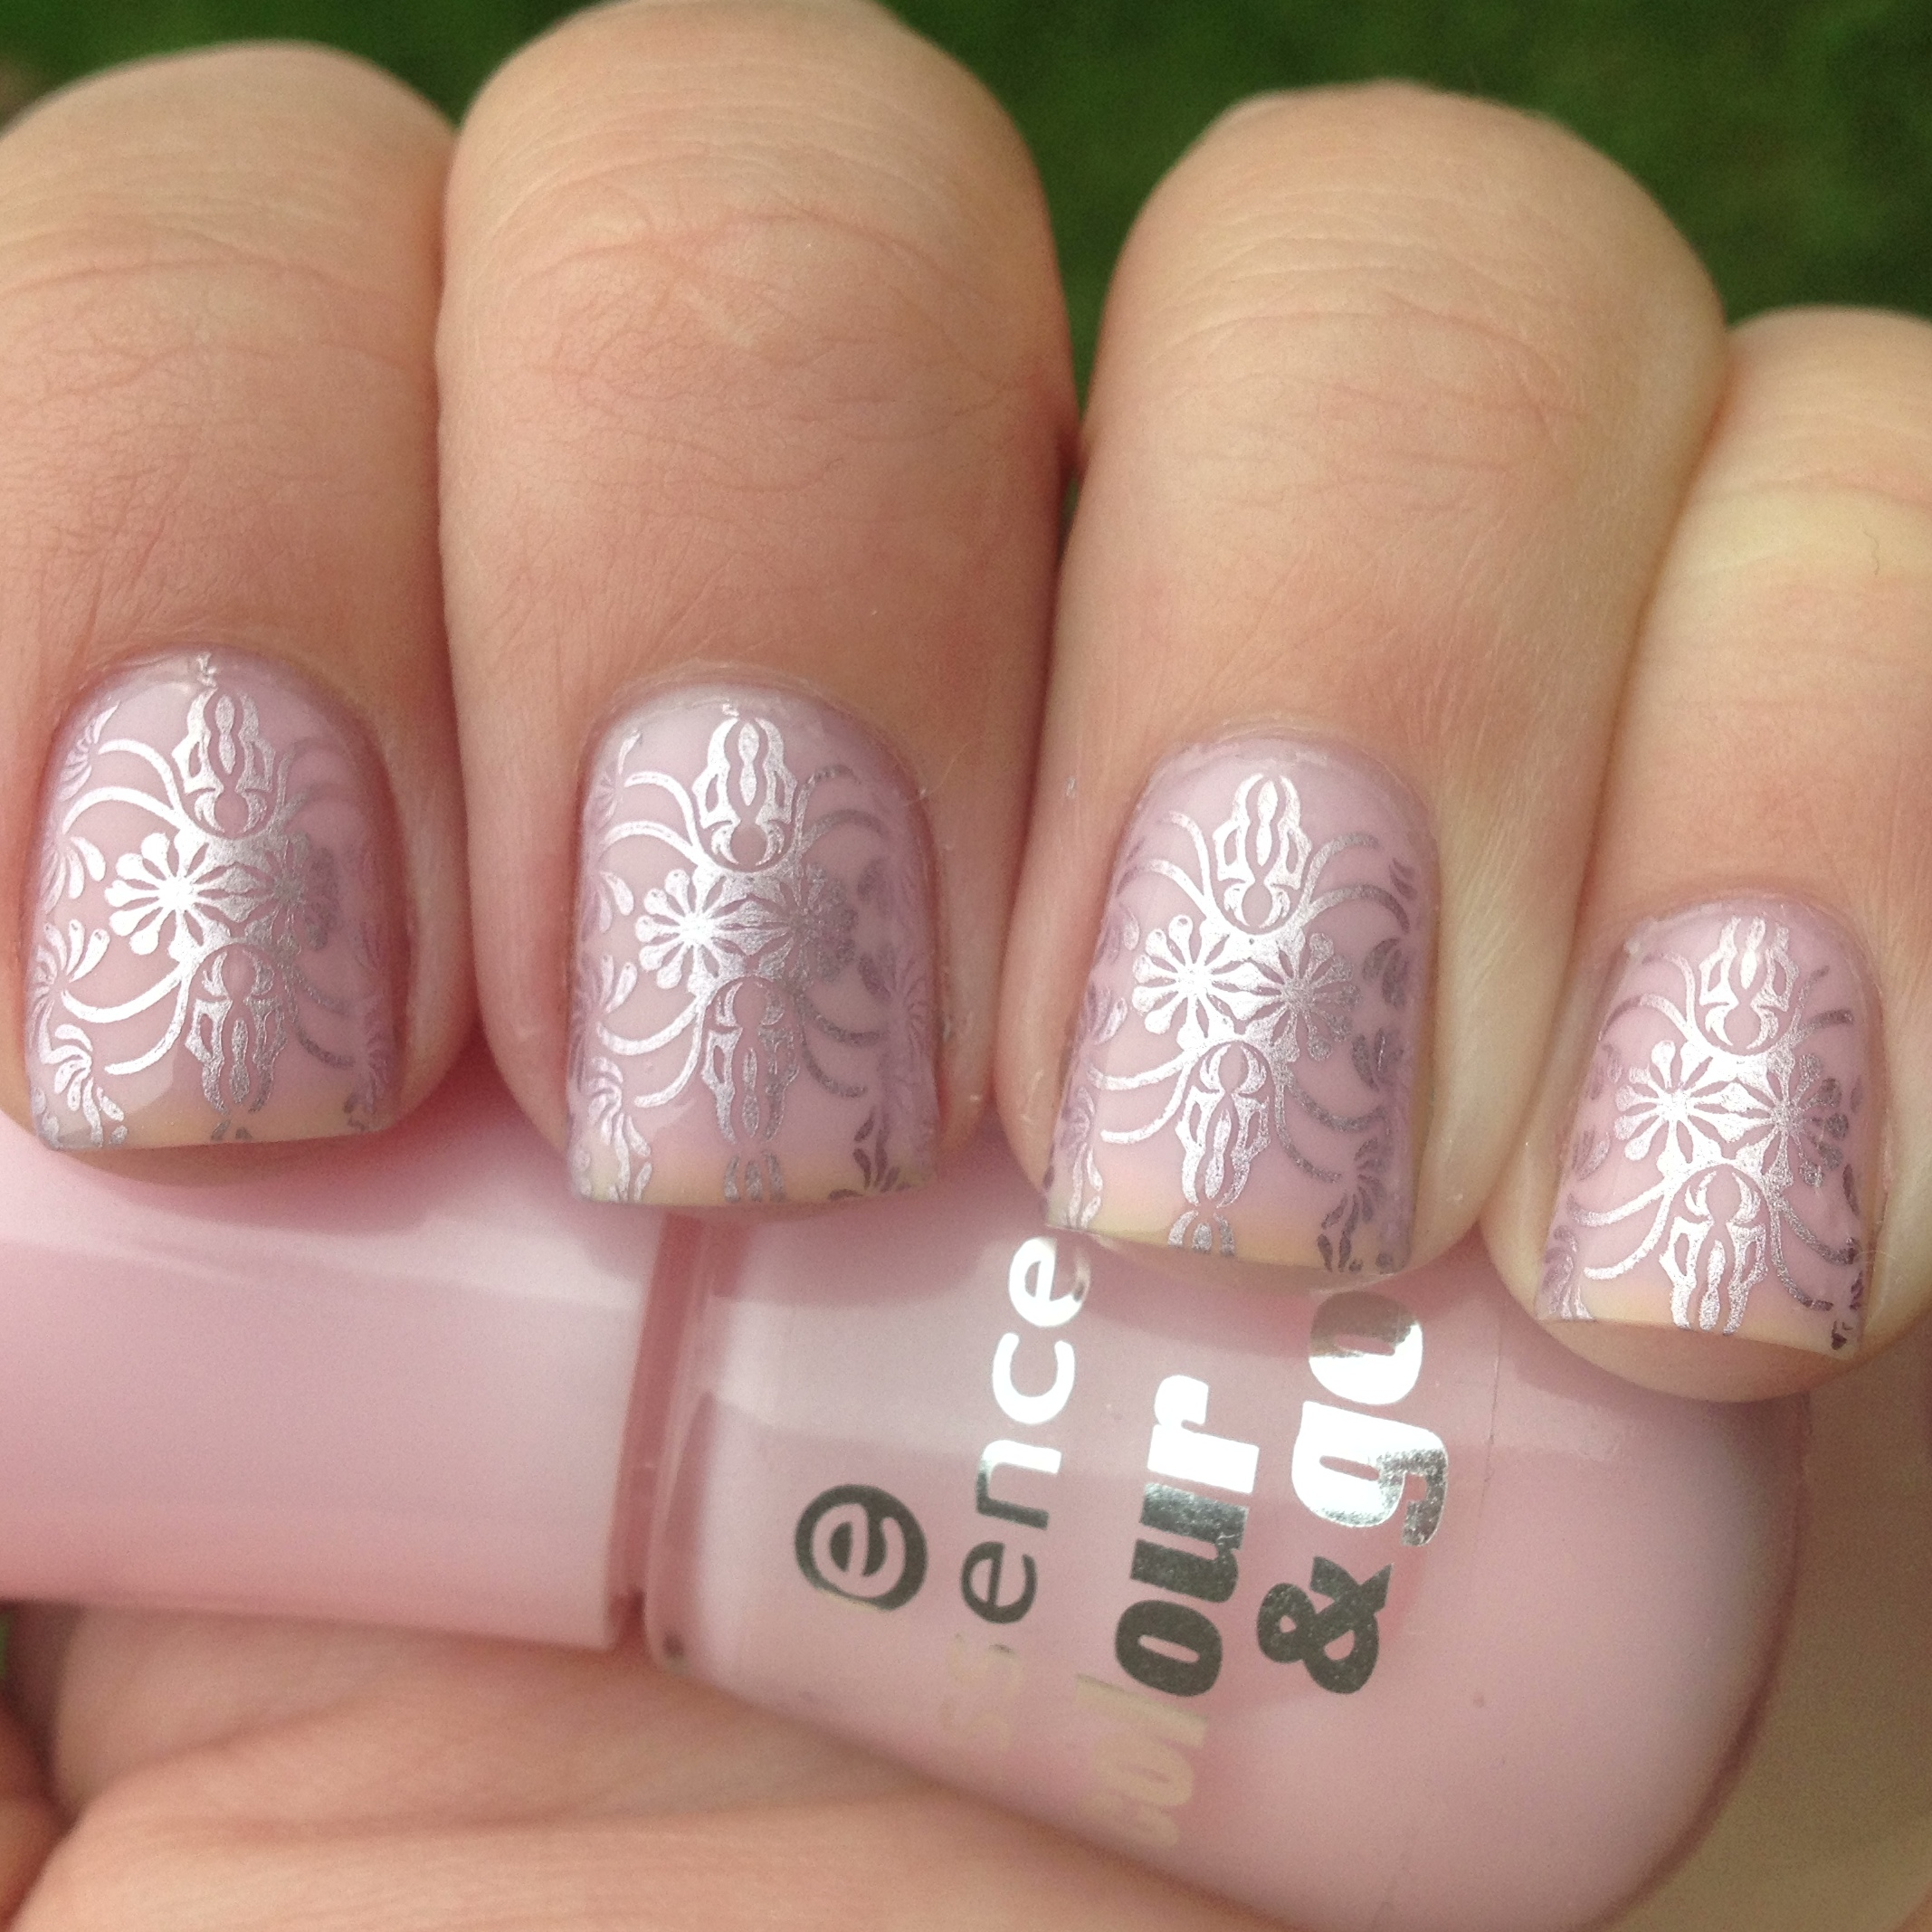 Essence sweet as candy nail art and review polish me please essence prinsesfo Images